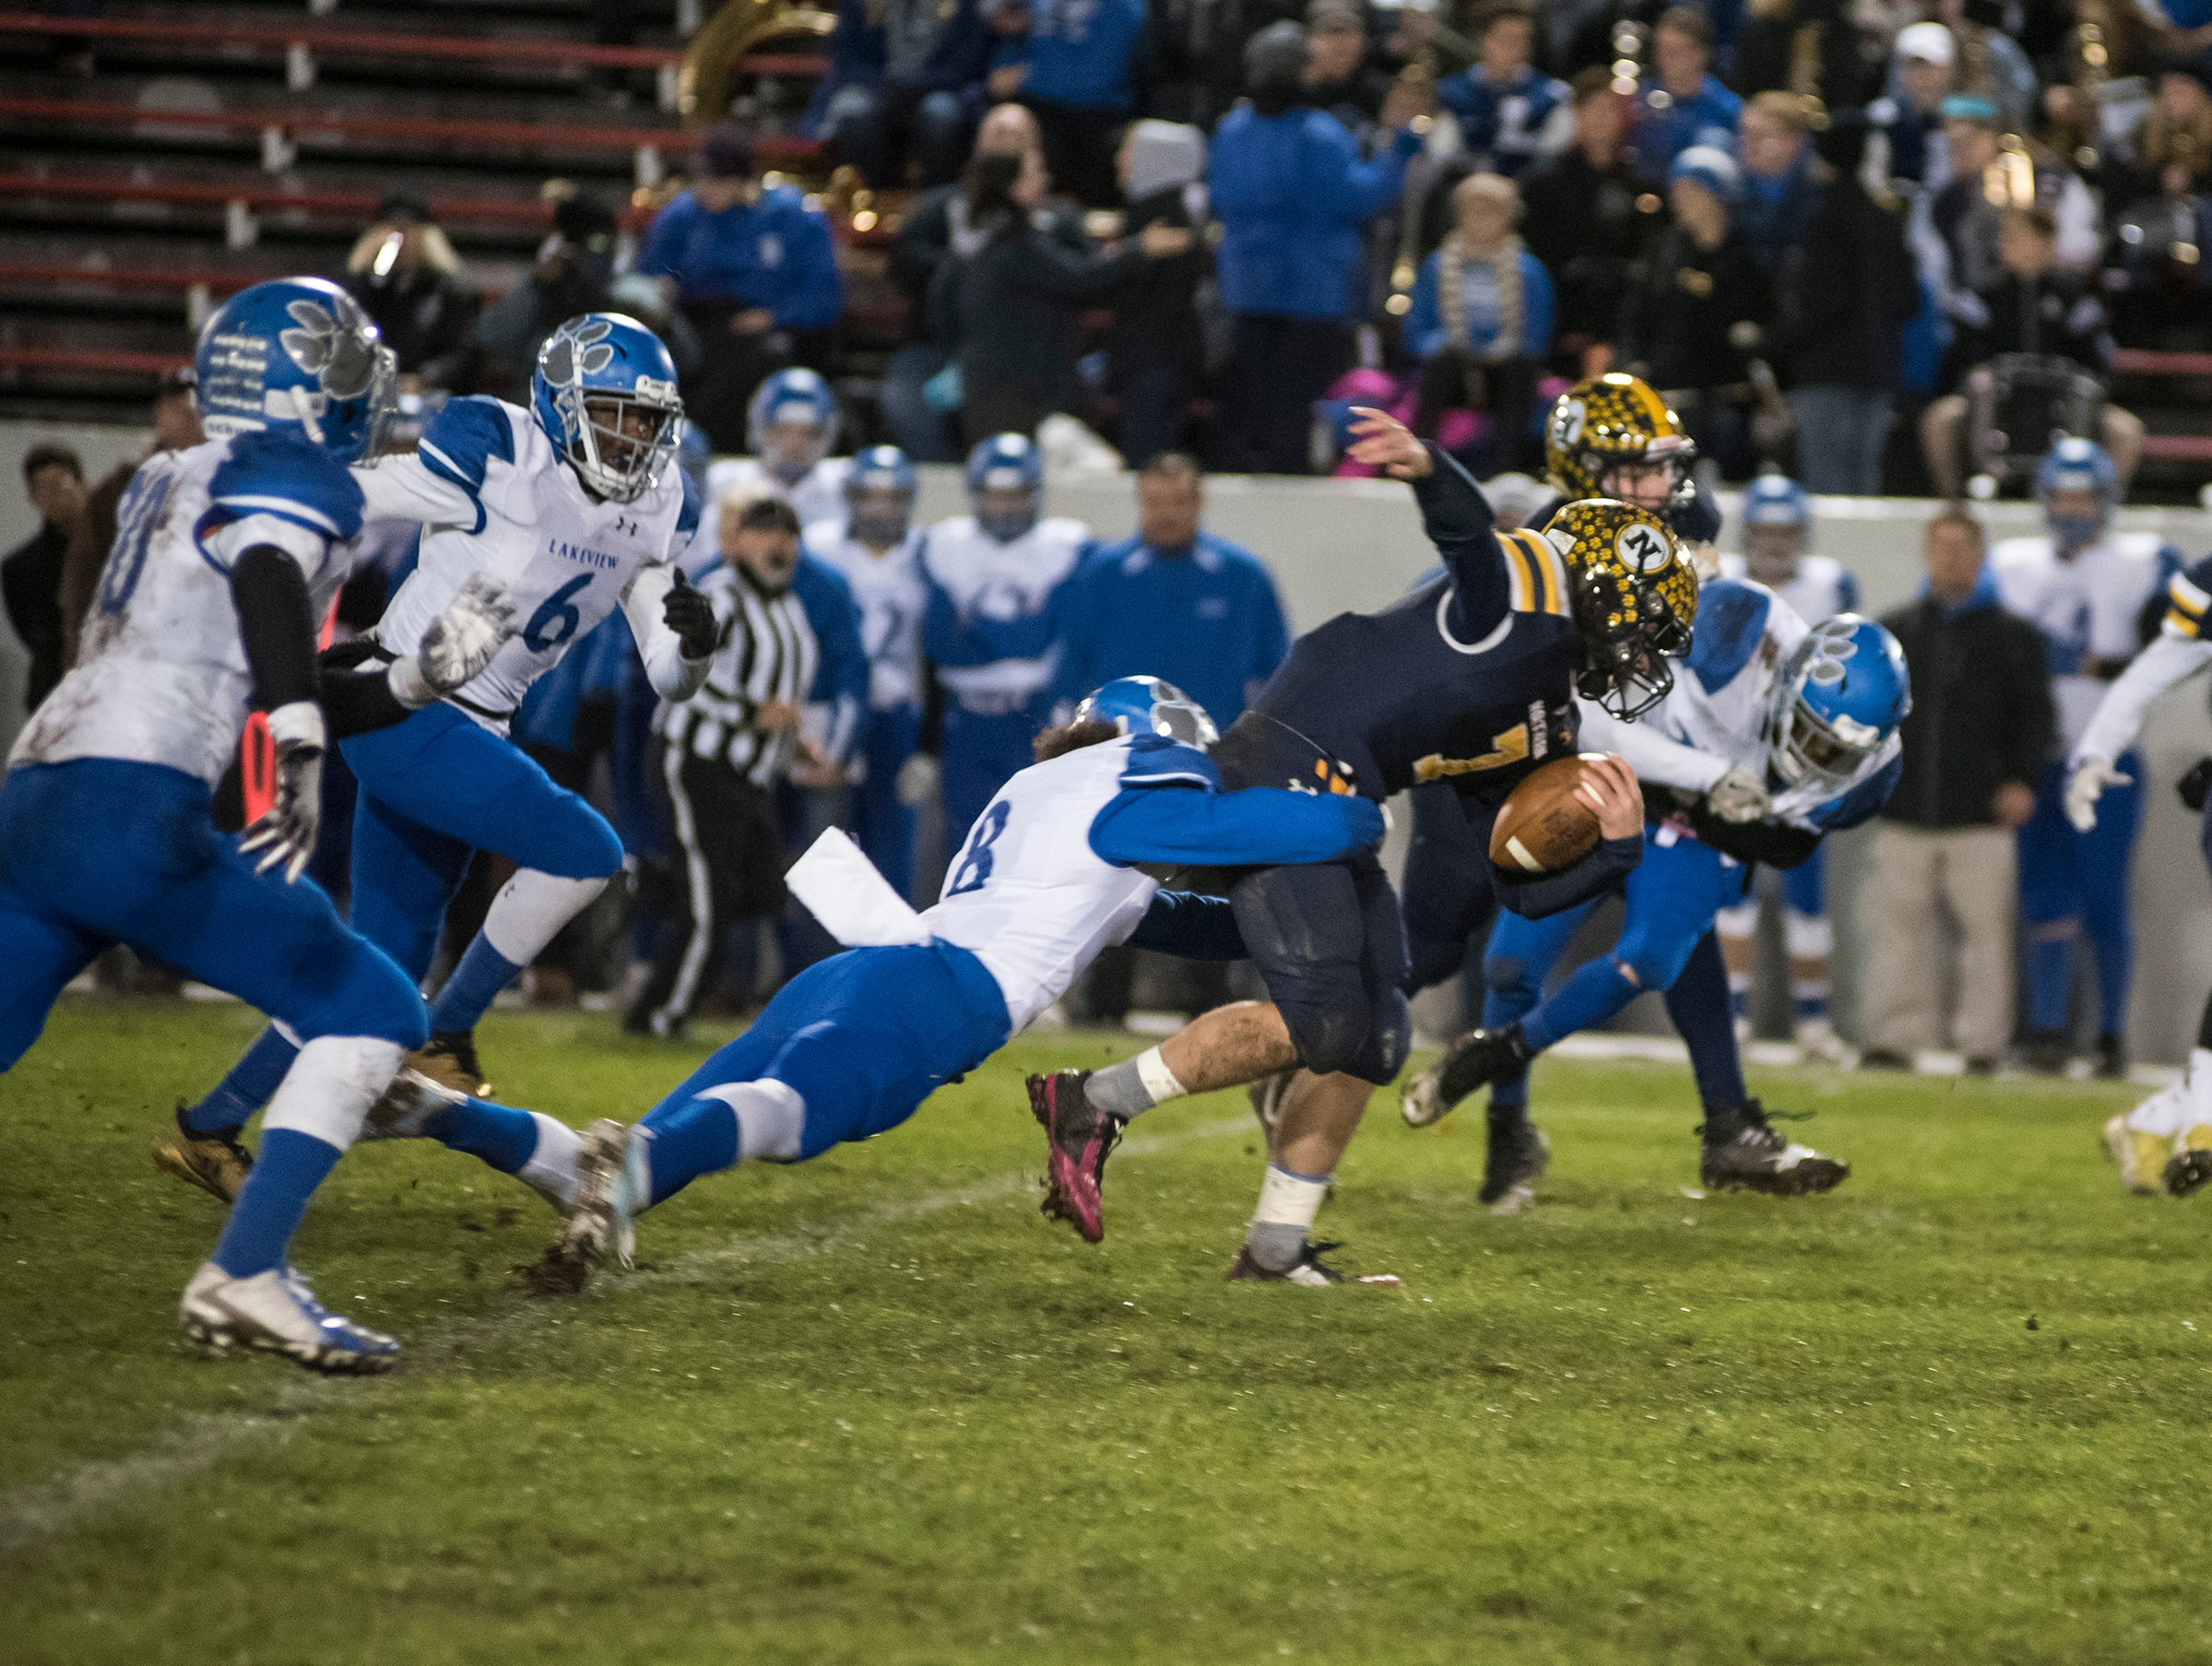 Port Huron Northern High School running back Theo Ellis is tackled by St. Clair Shores Lakeview's Isaiah Robinson (8) in the first quarter of  their Division 2 finals match Friday, Nov. 2, 2018 at Memorial Stadium in Port Huron.